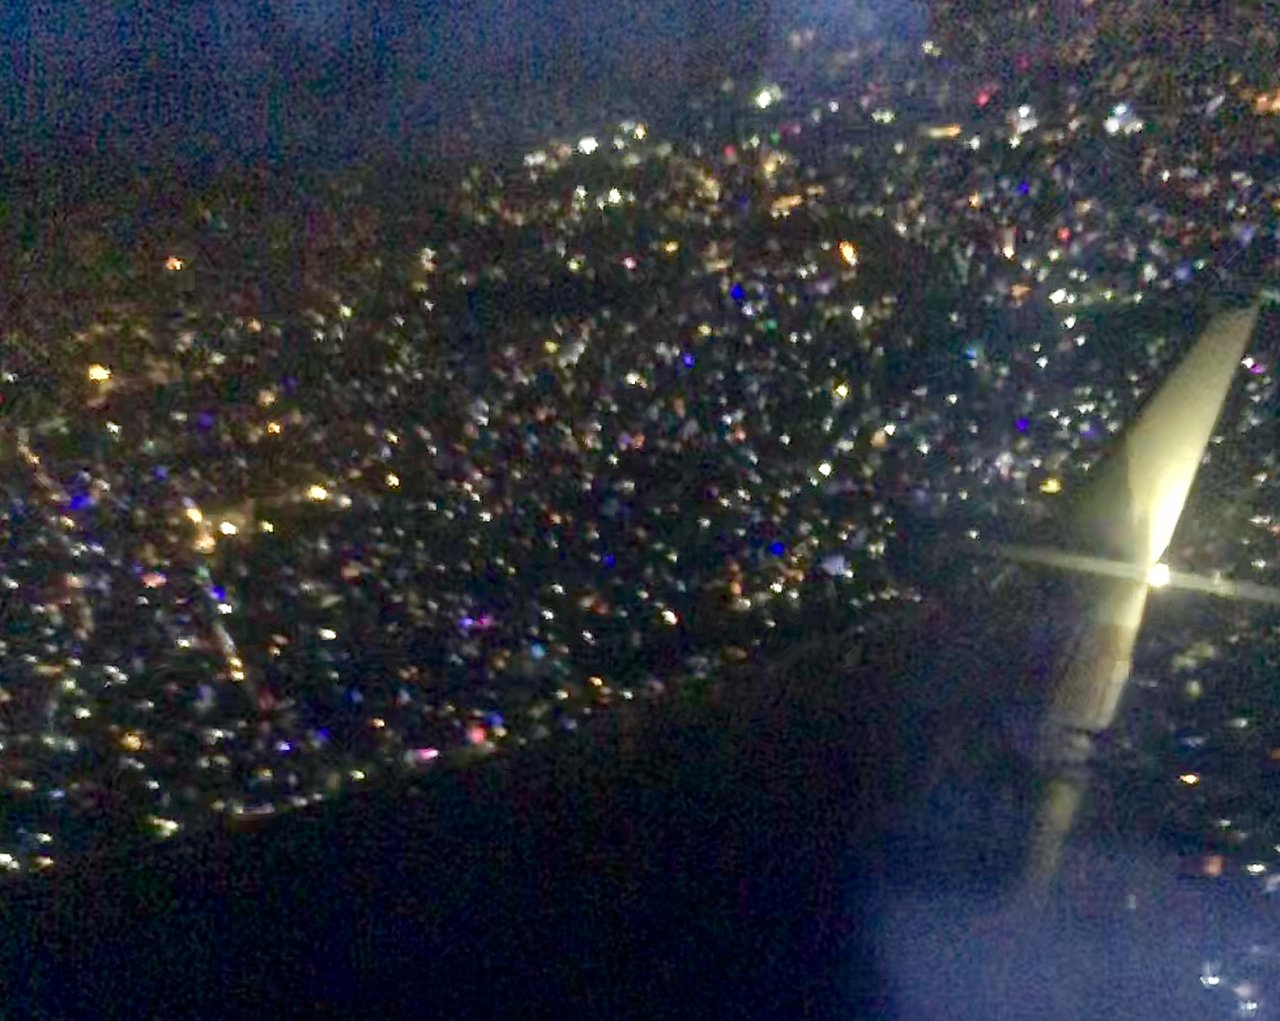 Kathmandu's Tihar lights from the air | Photo taken by Caroline R